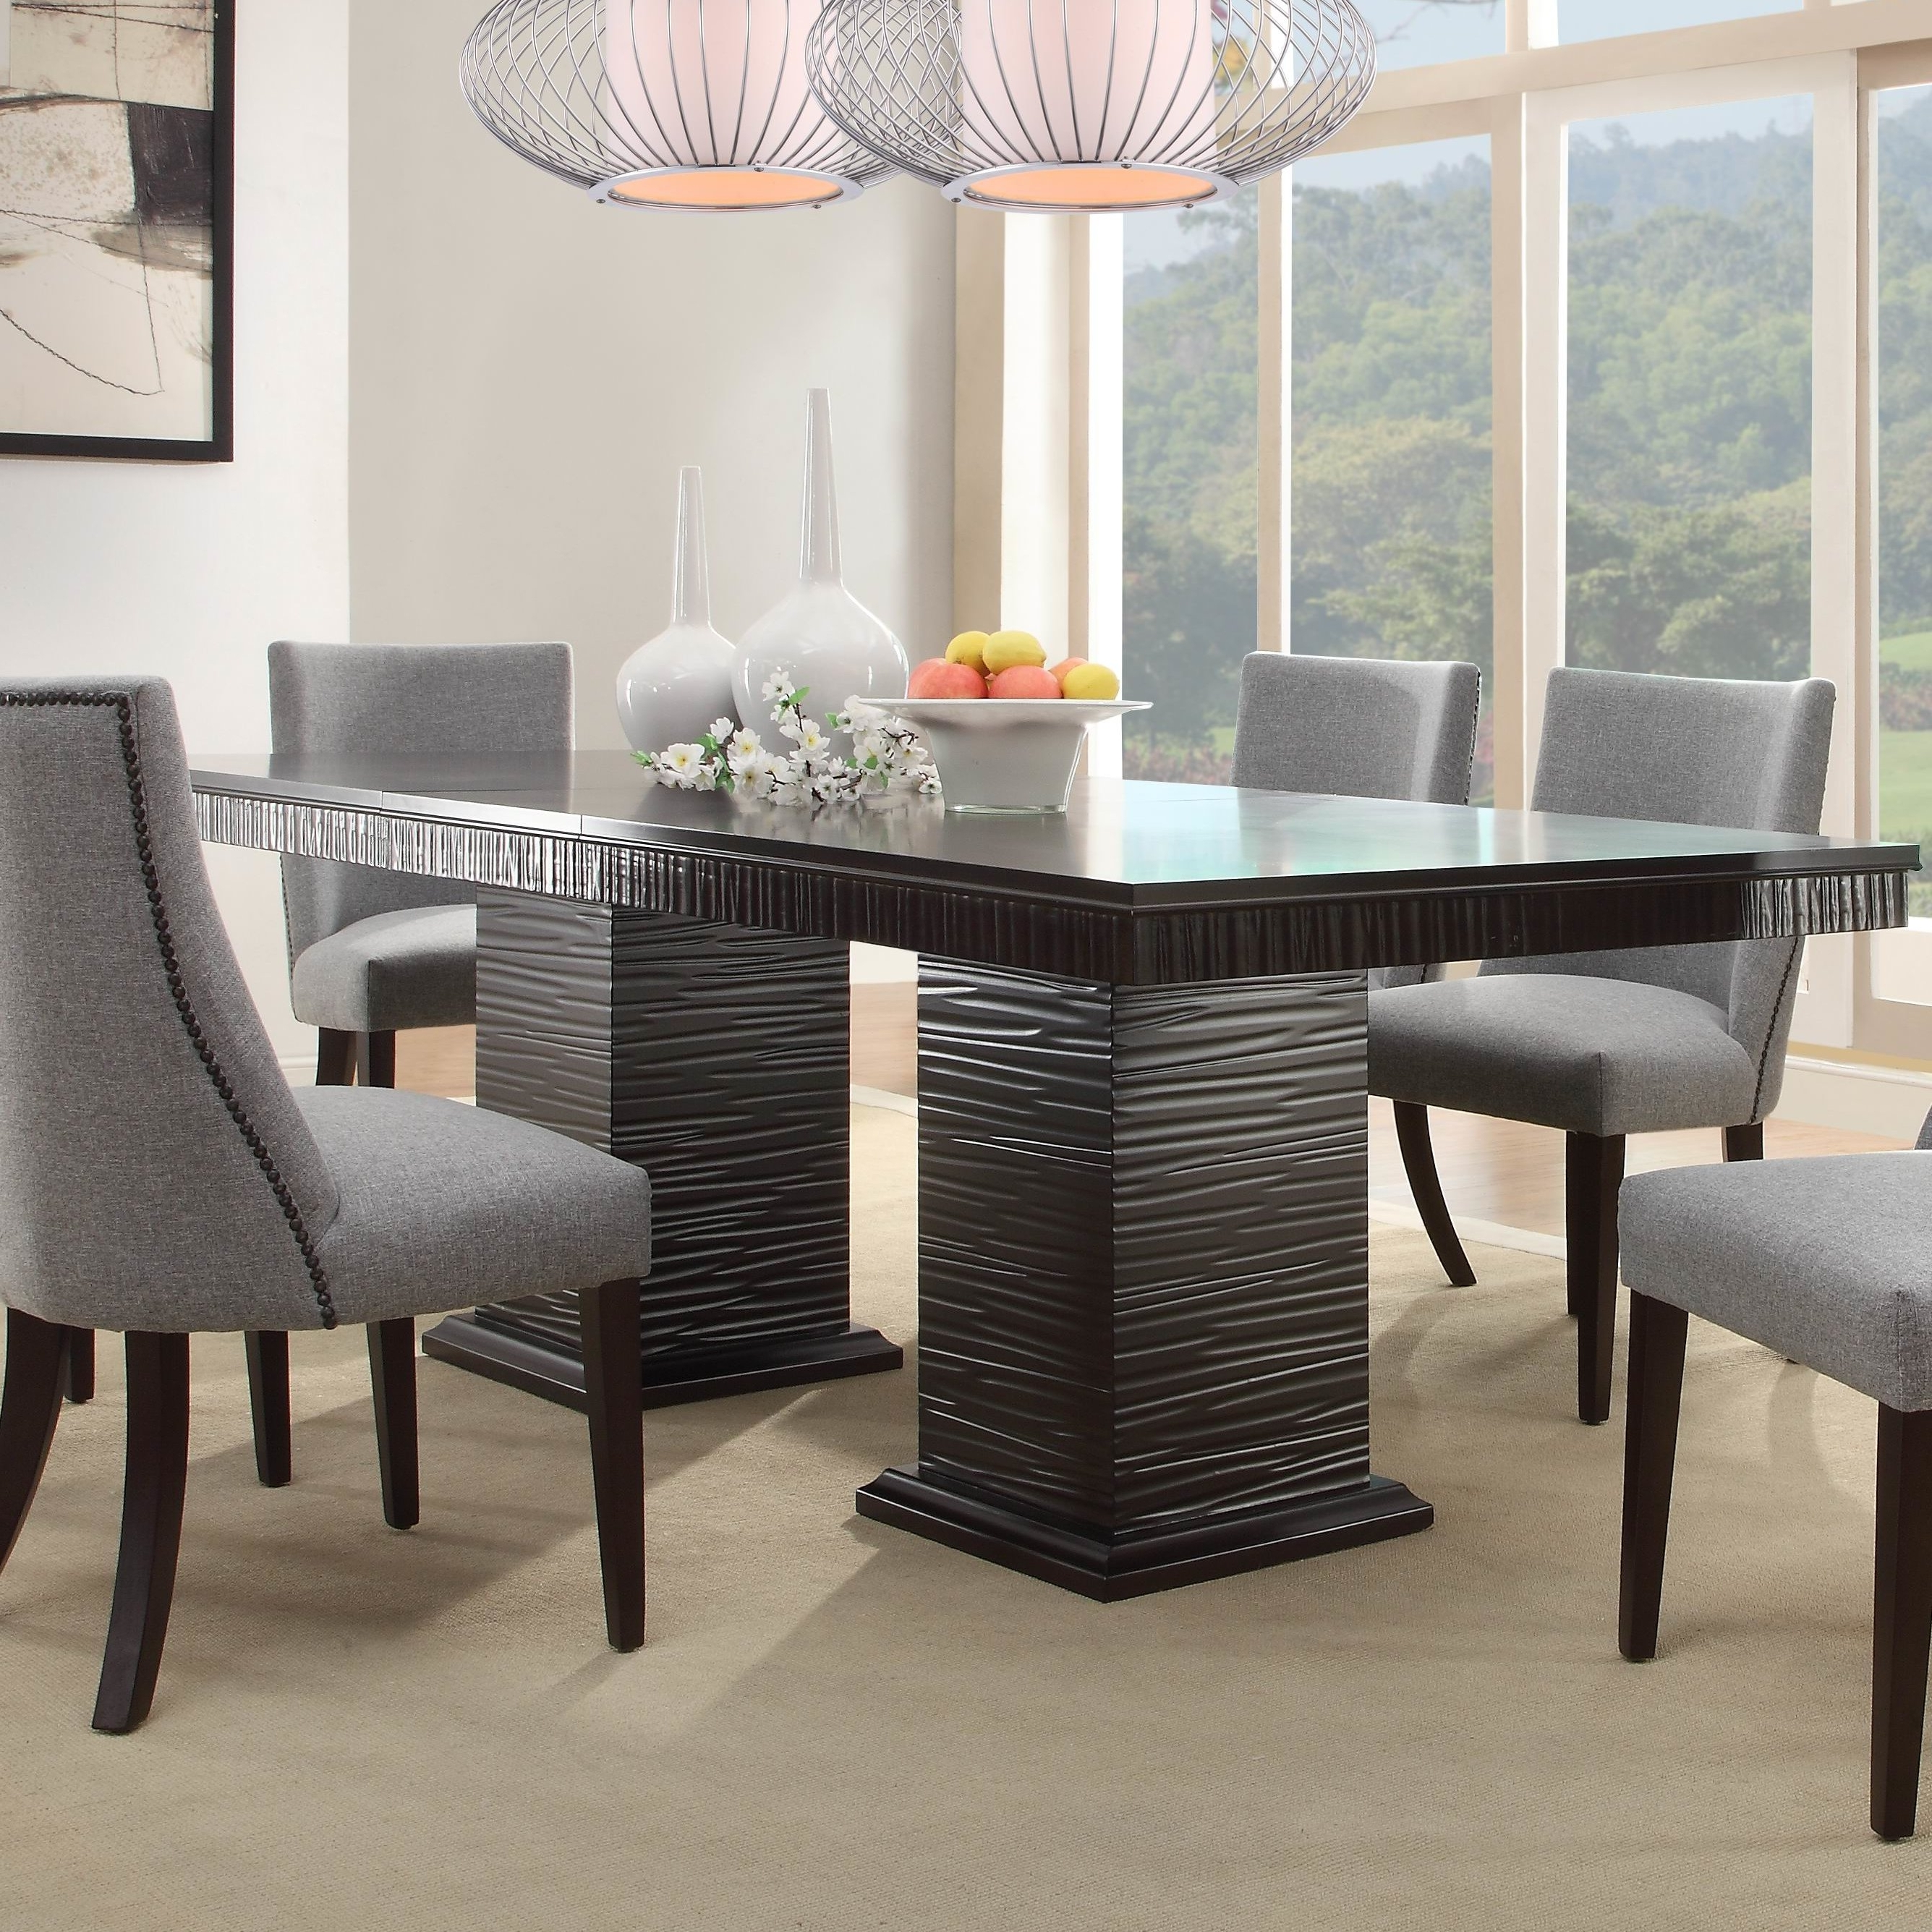 2017 Cadogan Extendable Dining Table with regard to Extendable Dining Sets